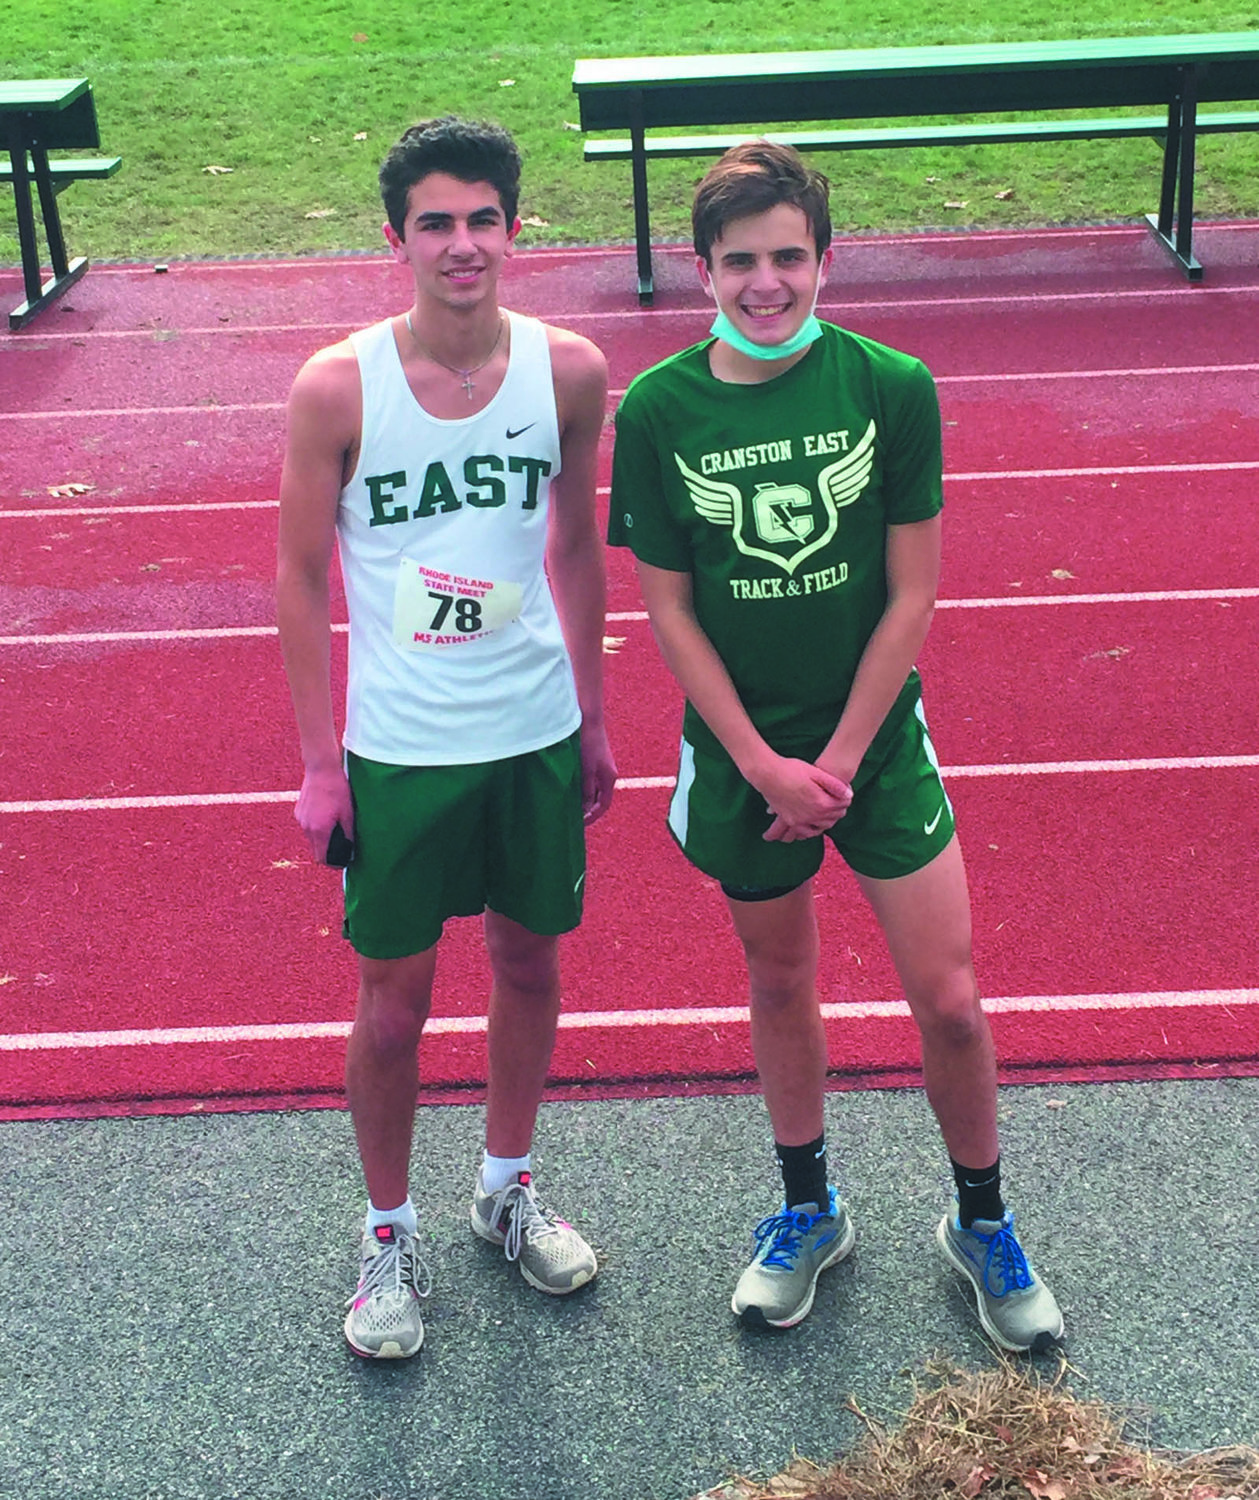 LEADING THE WAY: Cranston East's Nicholas Cobb and Allen Kevorkian.